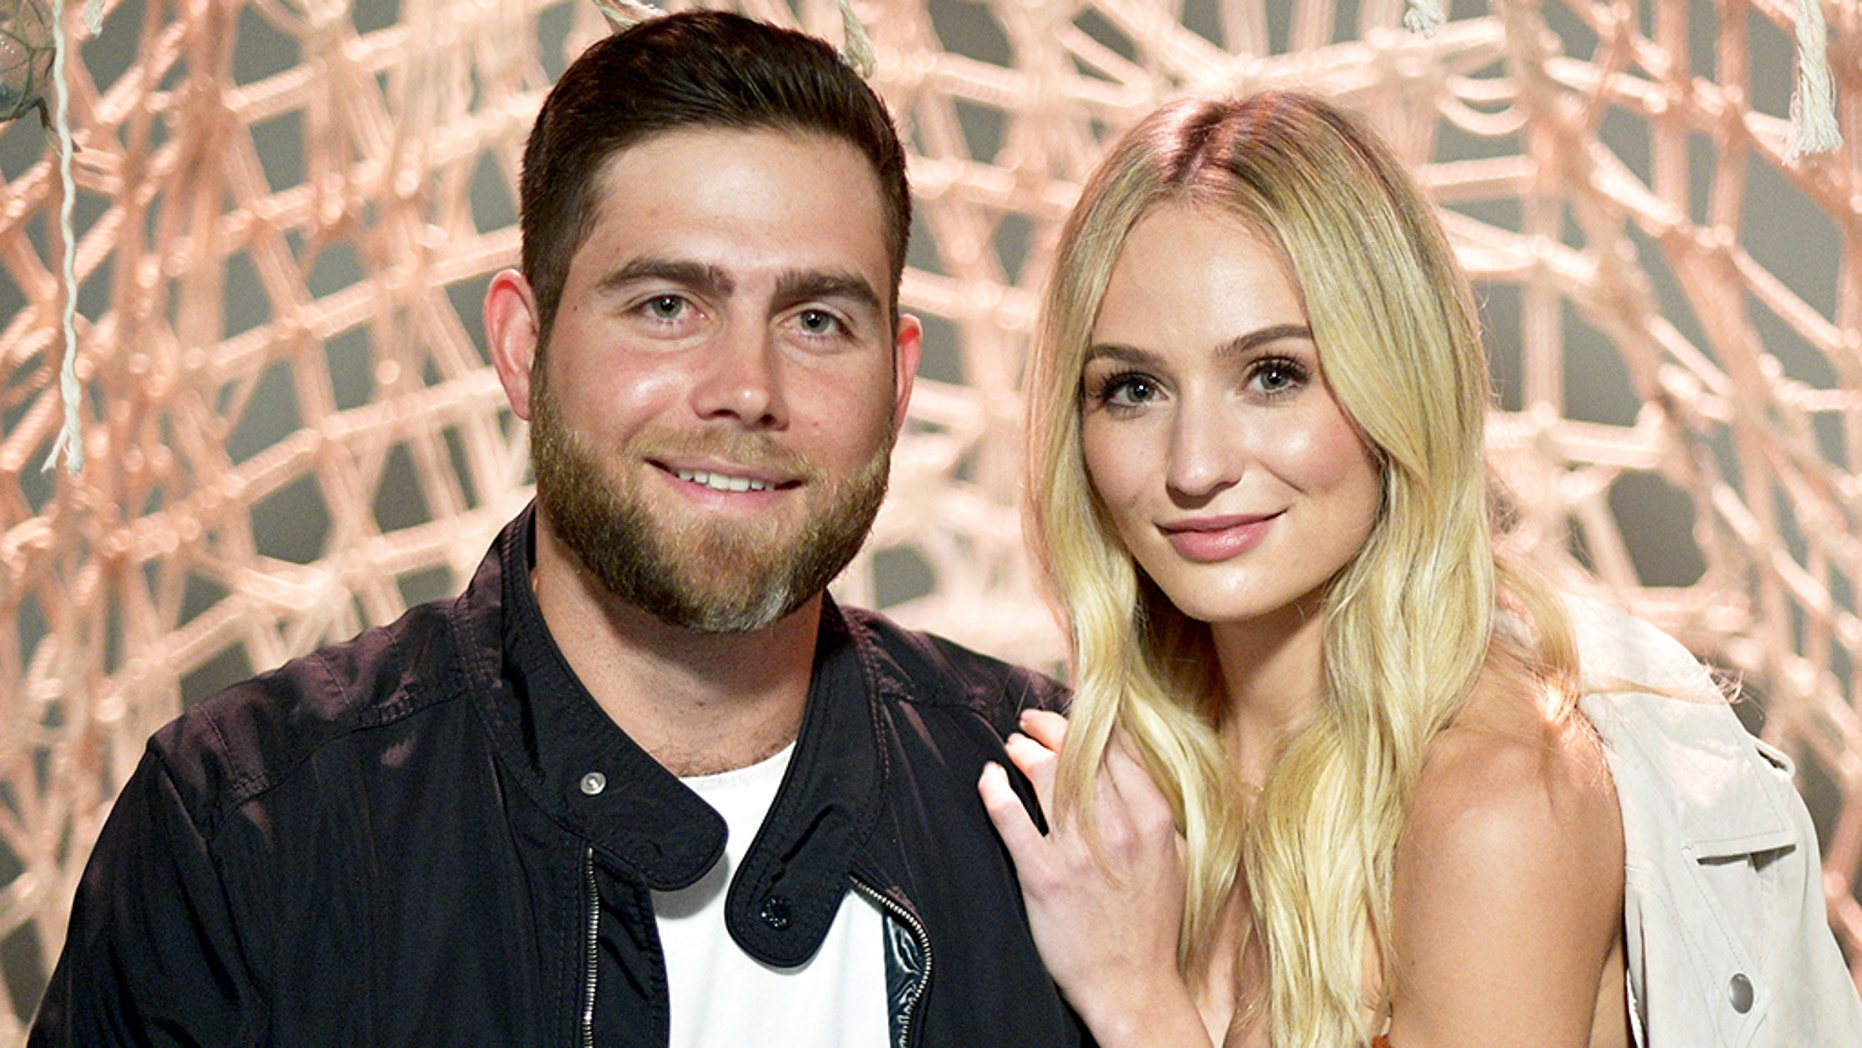 'Bachelor' winner Lauren Bushnell, right, shared a Bible verse on social media after her split from Devin Antin, left.